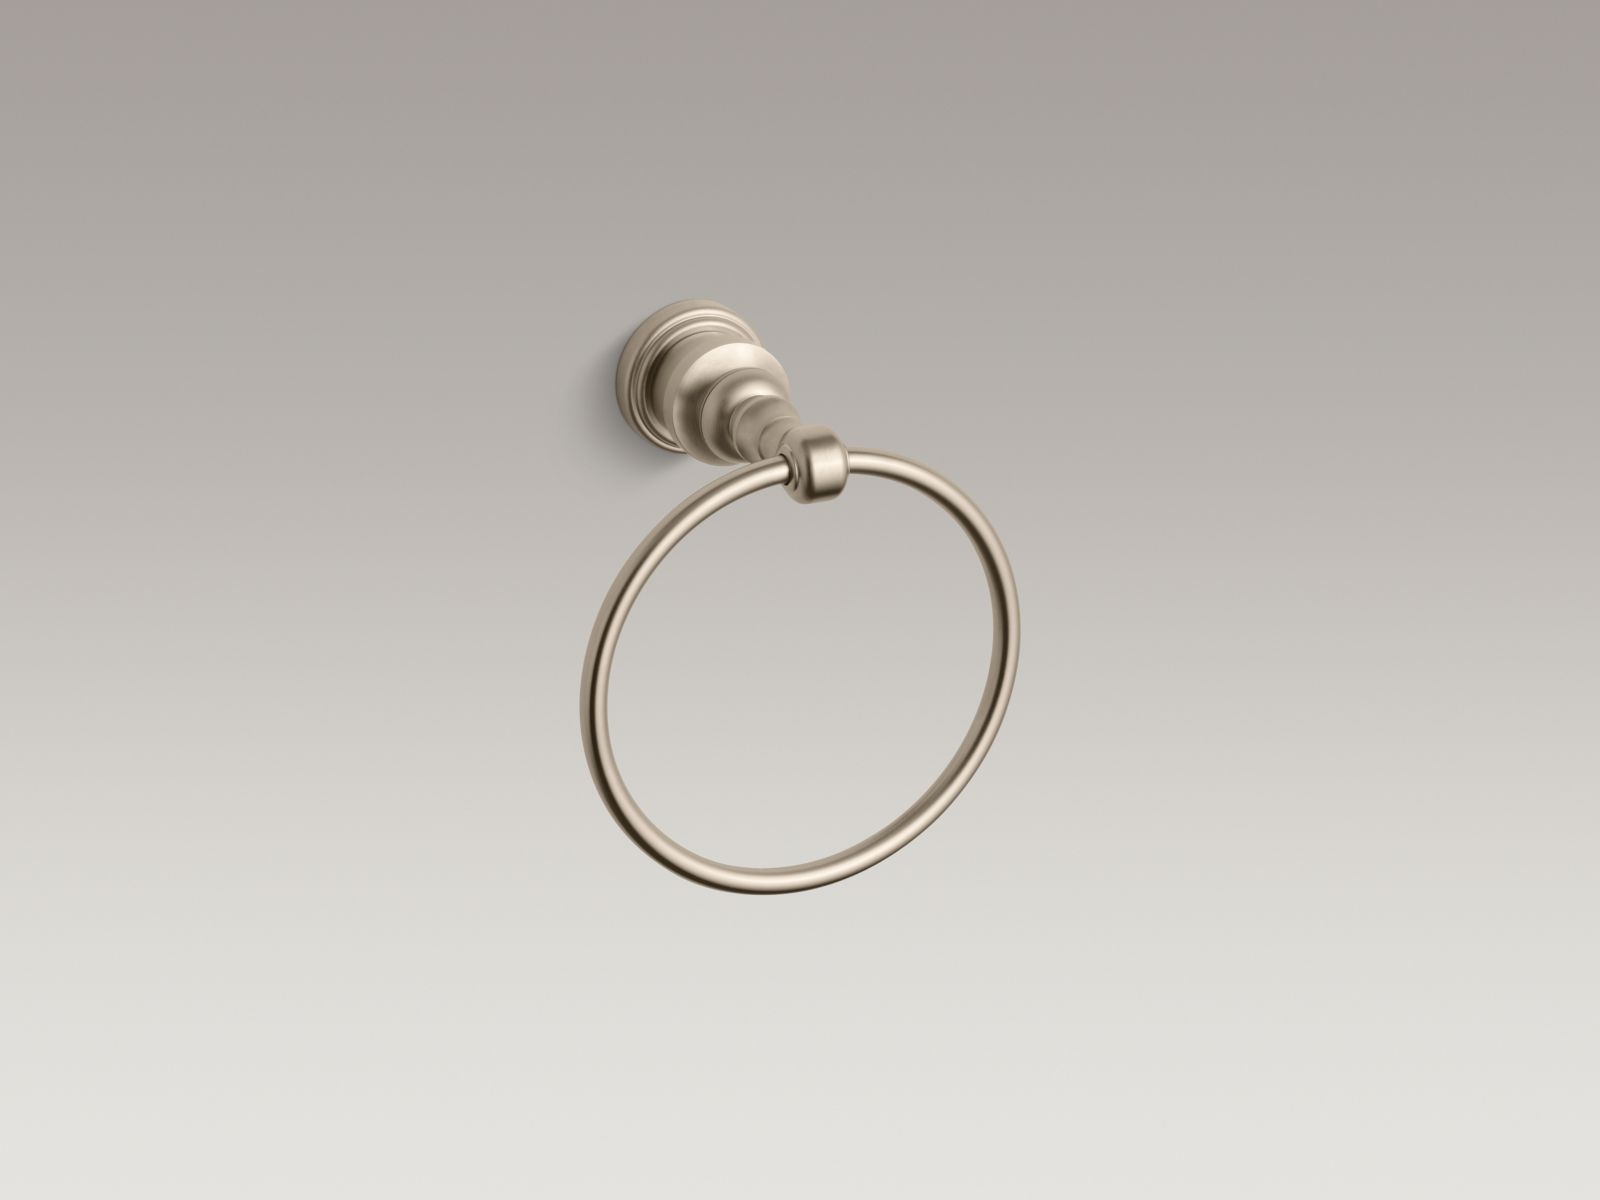 Kohler K-6817-BV IV Georges Brass Towel Ring Vibrant Brushed Bronze